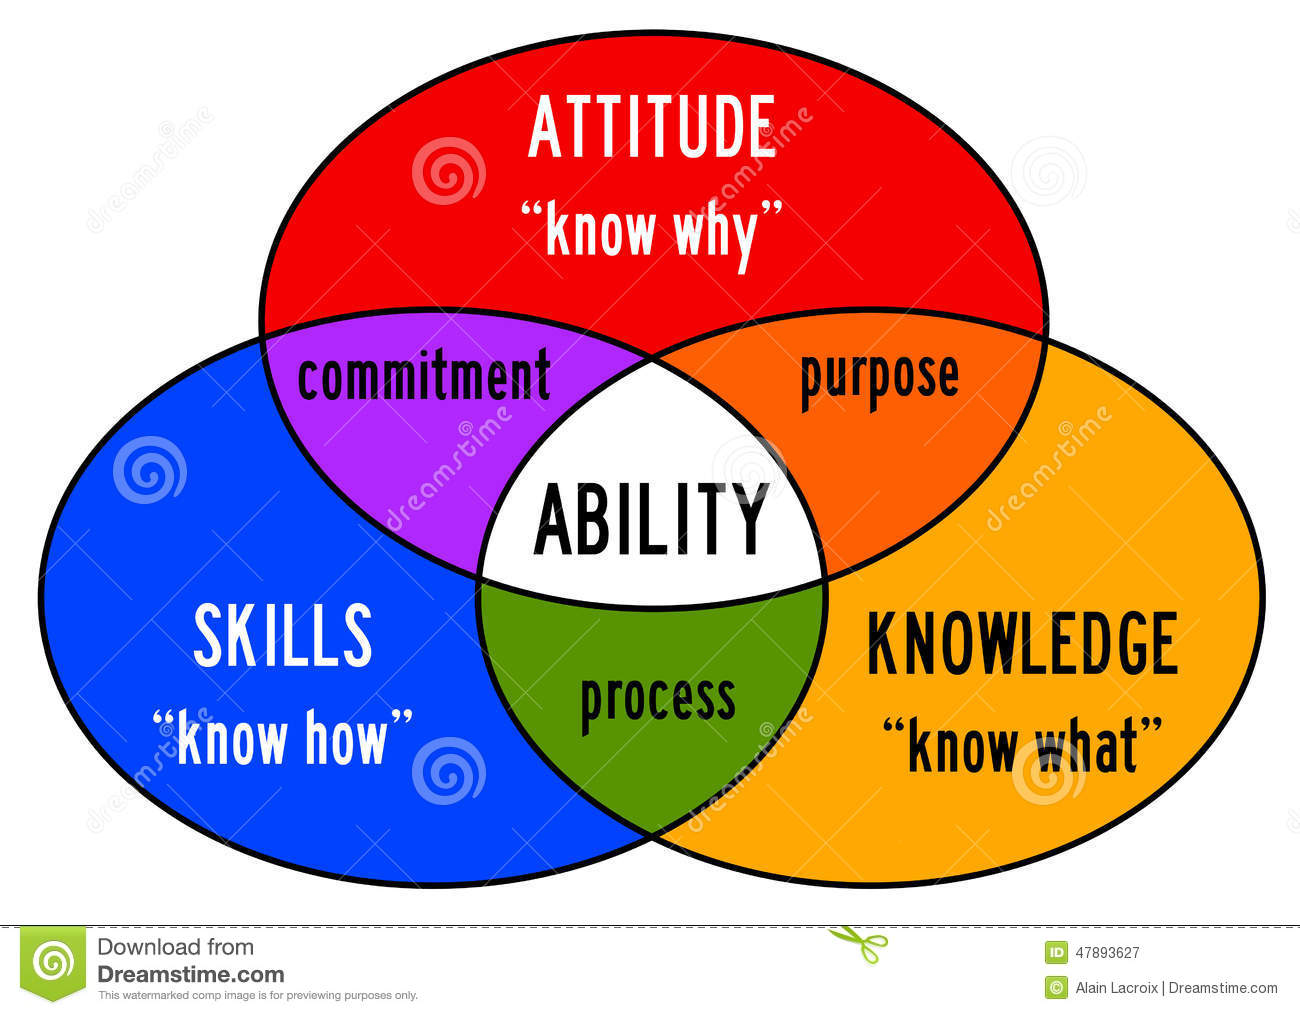 Combining skills, attitude and knowledge into ability.